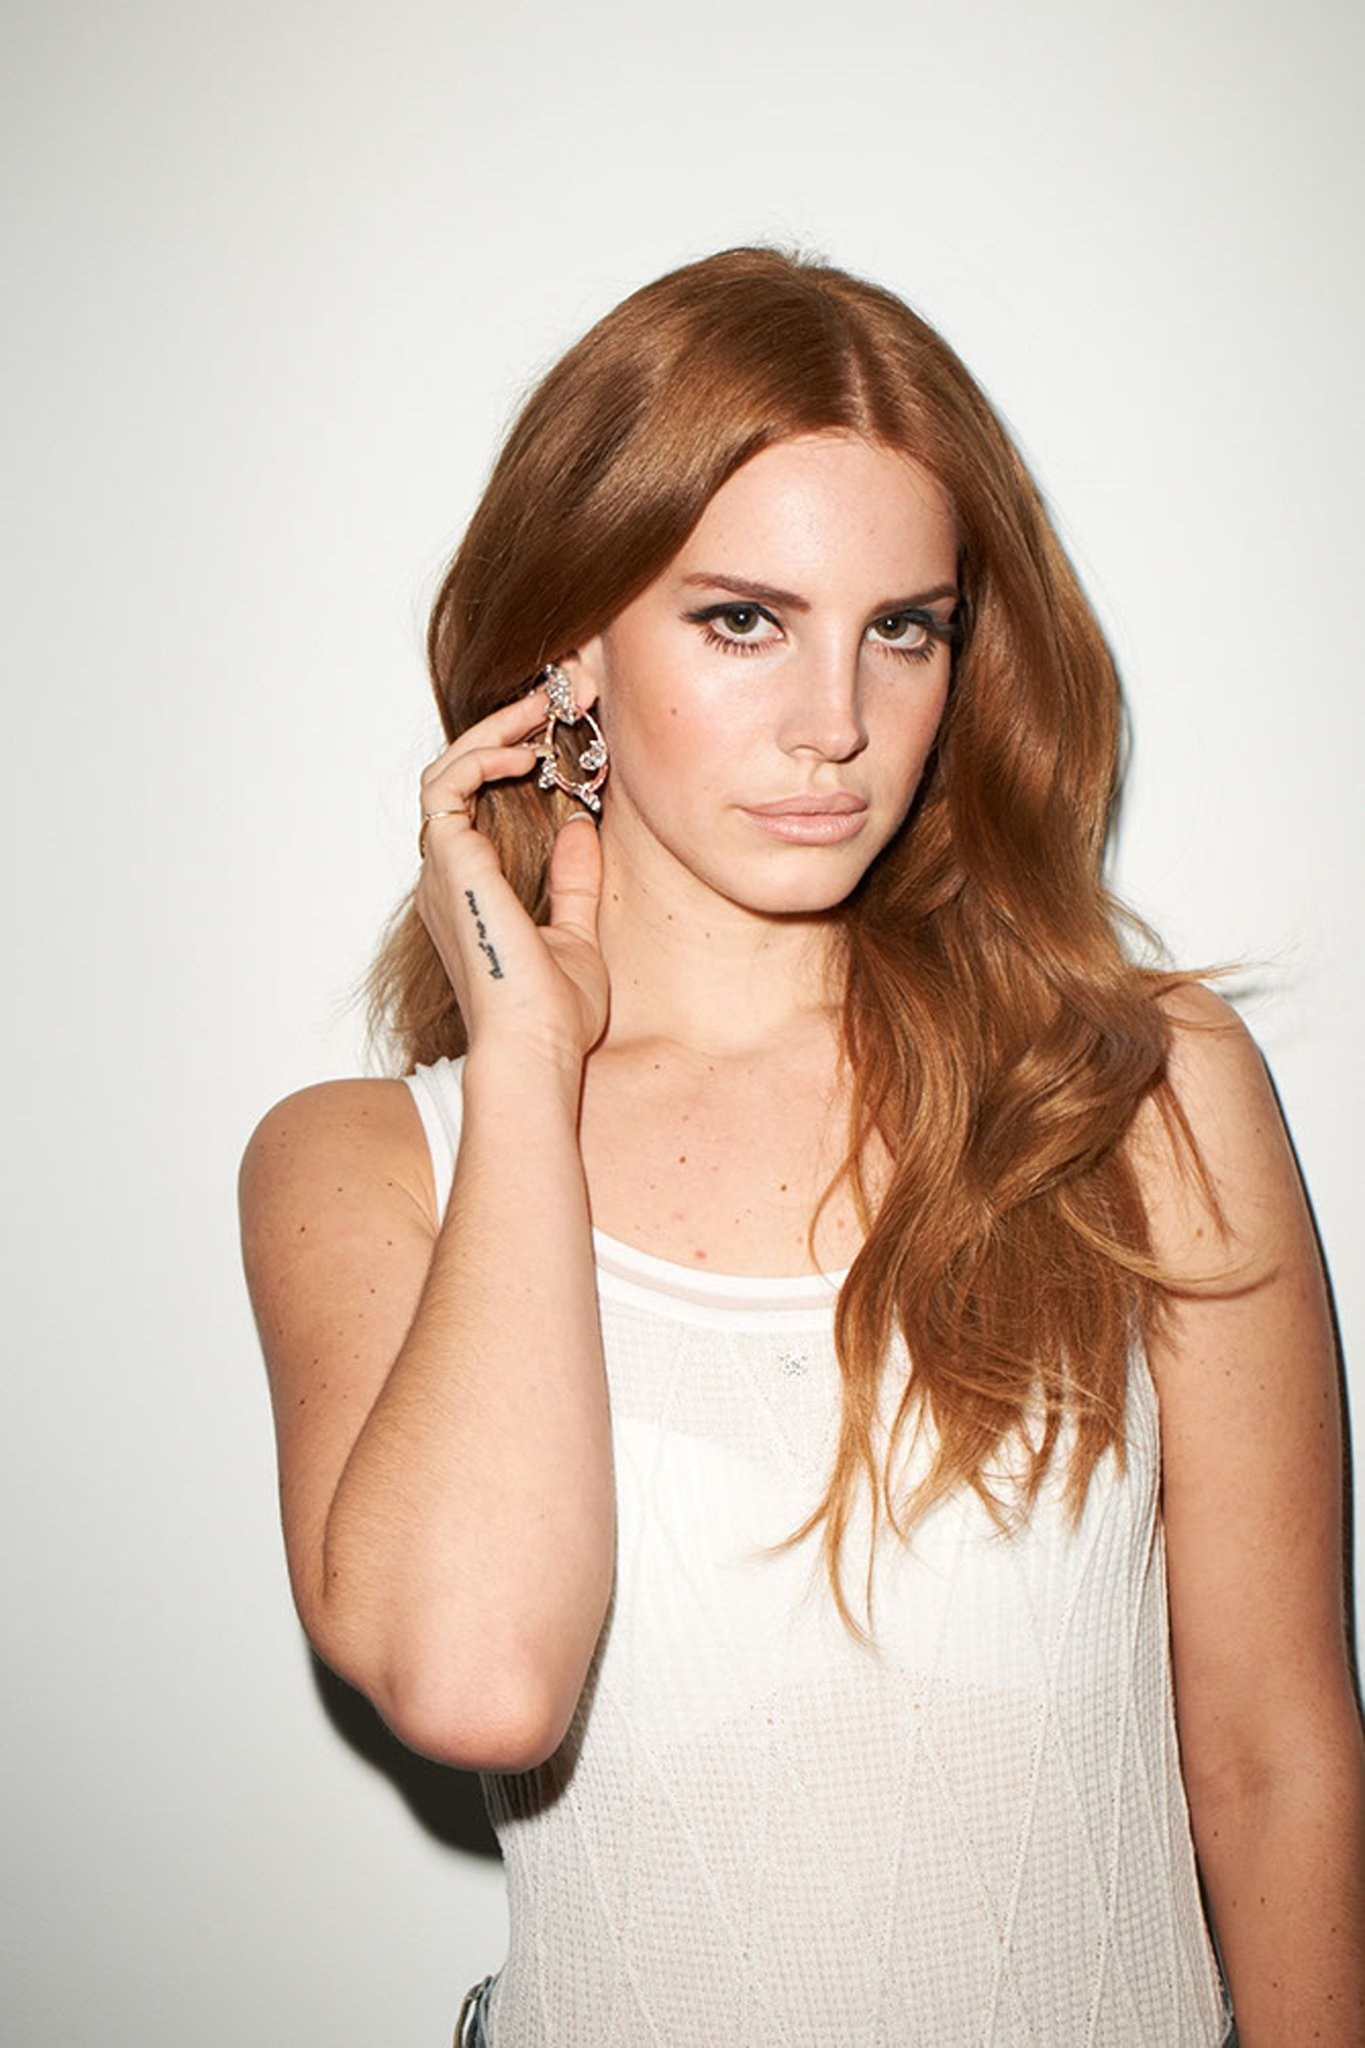 Lana Del Rey Biography Wiki, Age, Height, Weight, Facts